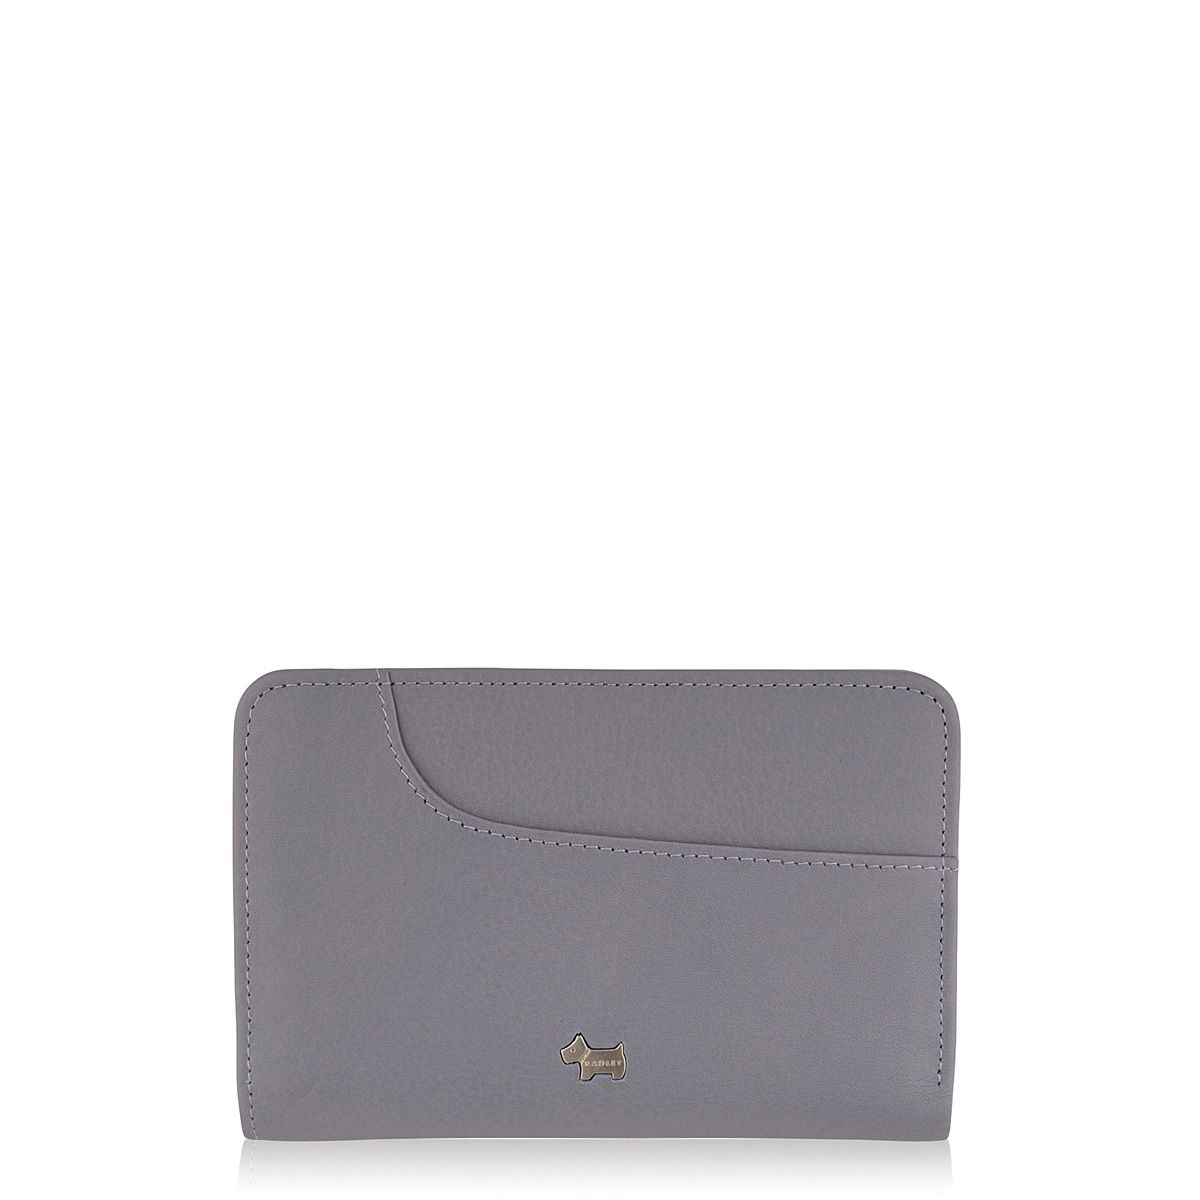 Purple medium zip around purse